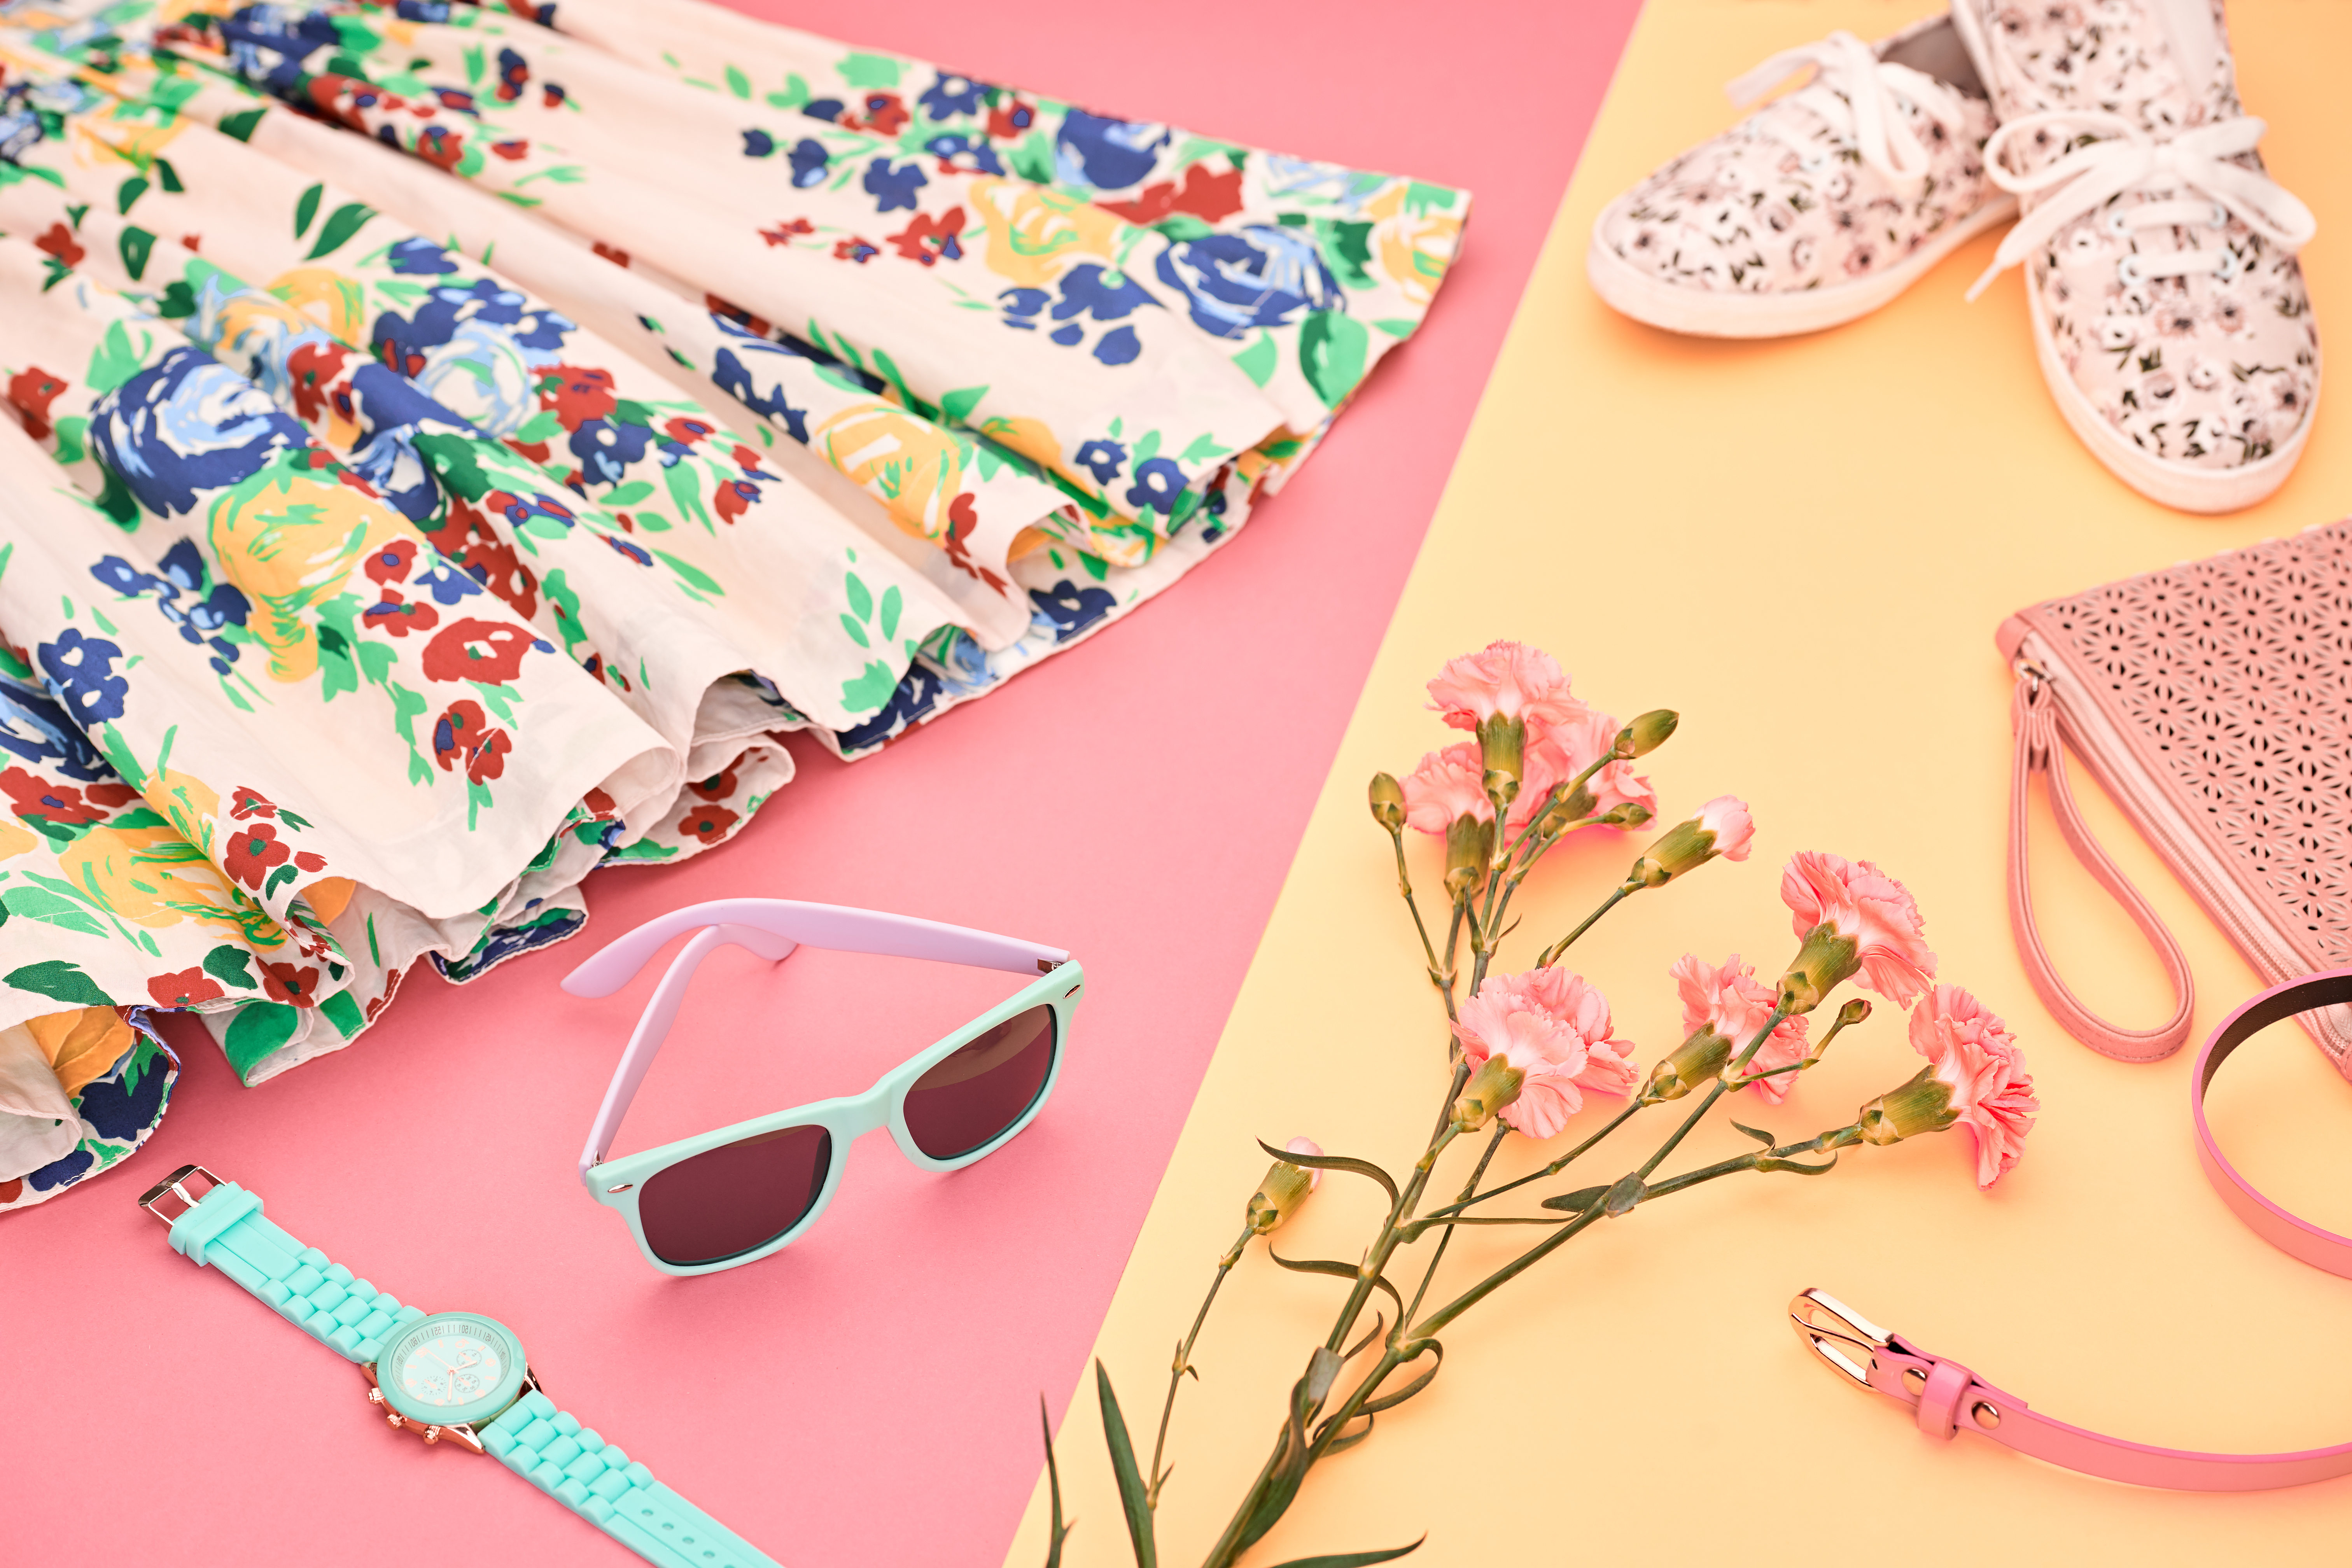 SS'18: Fashion Arrives in Small Packages!